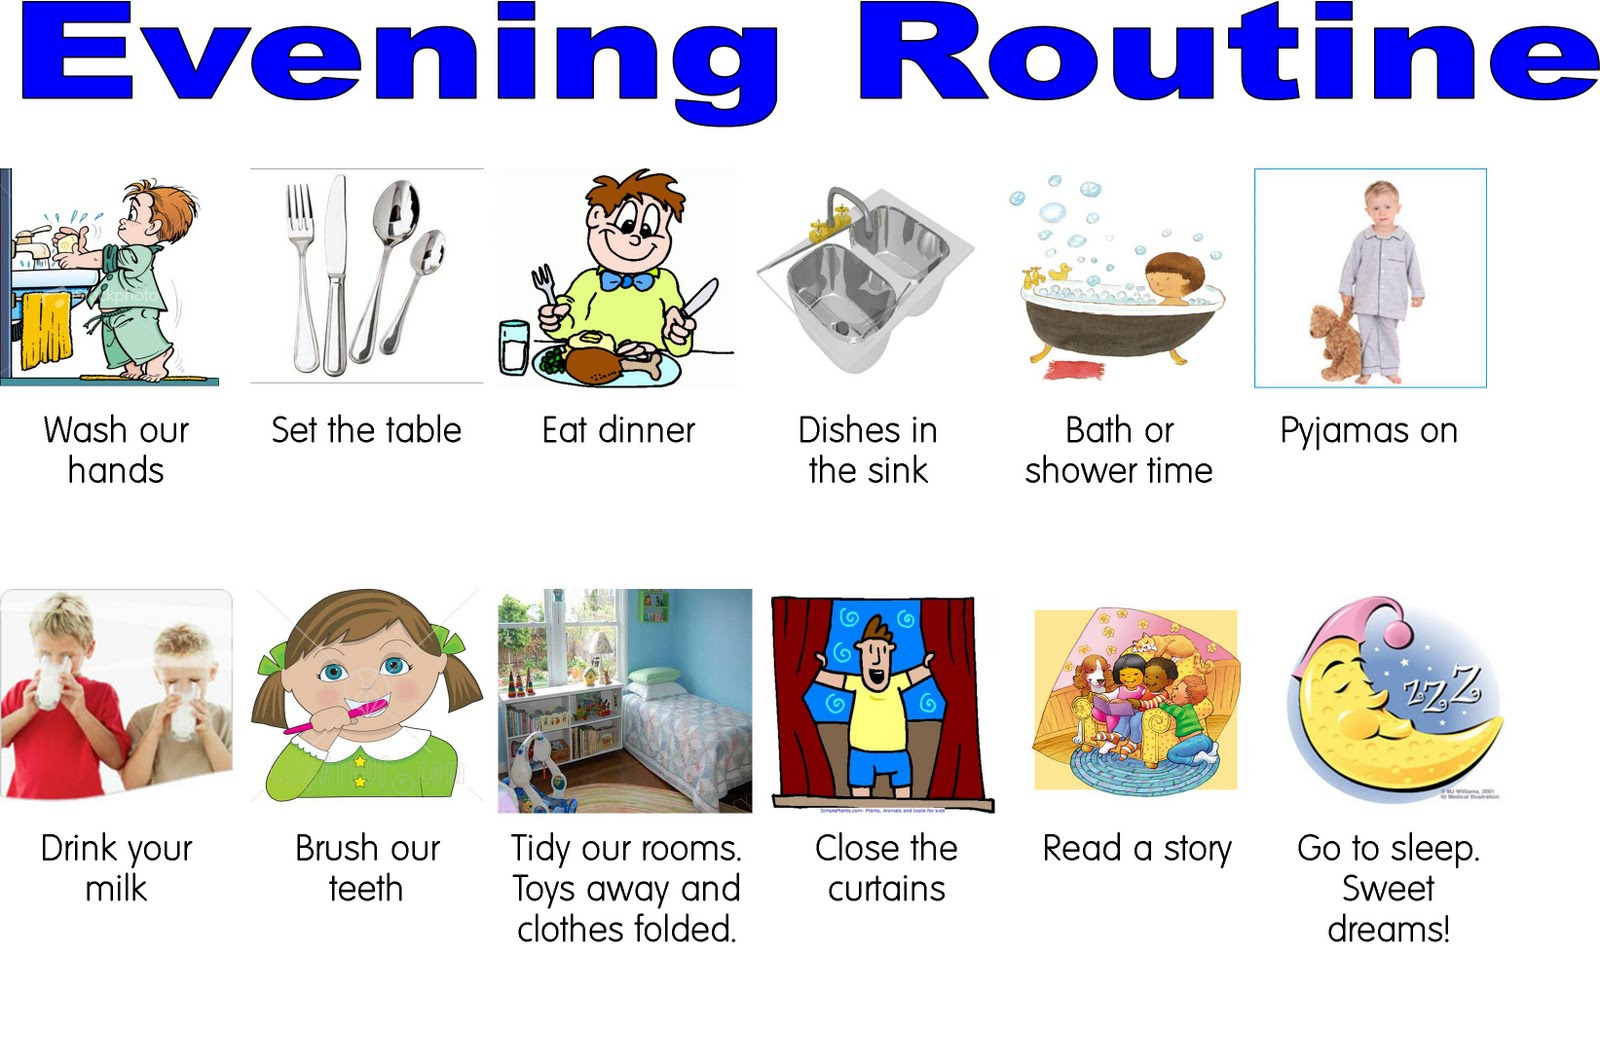 Free Evening Routine Cliparts Download Free Clip Art Free Clip Art On Clipart Library